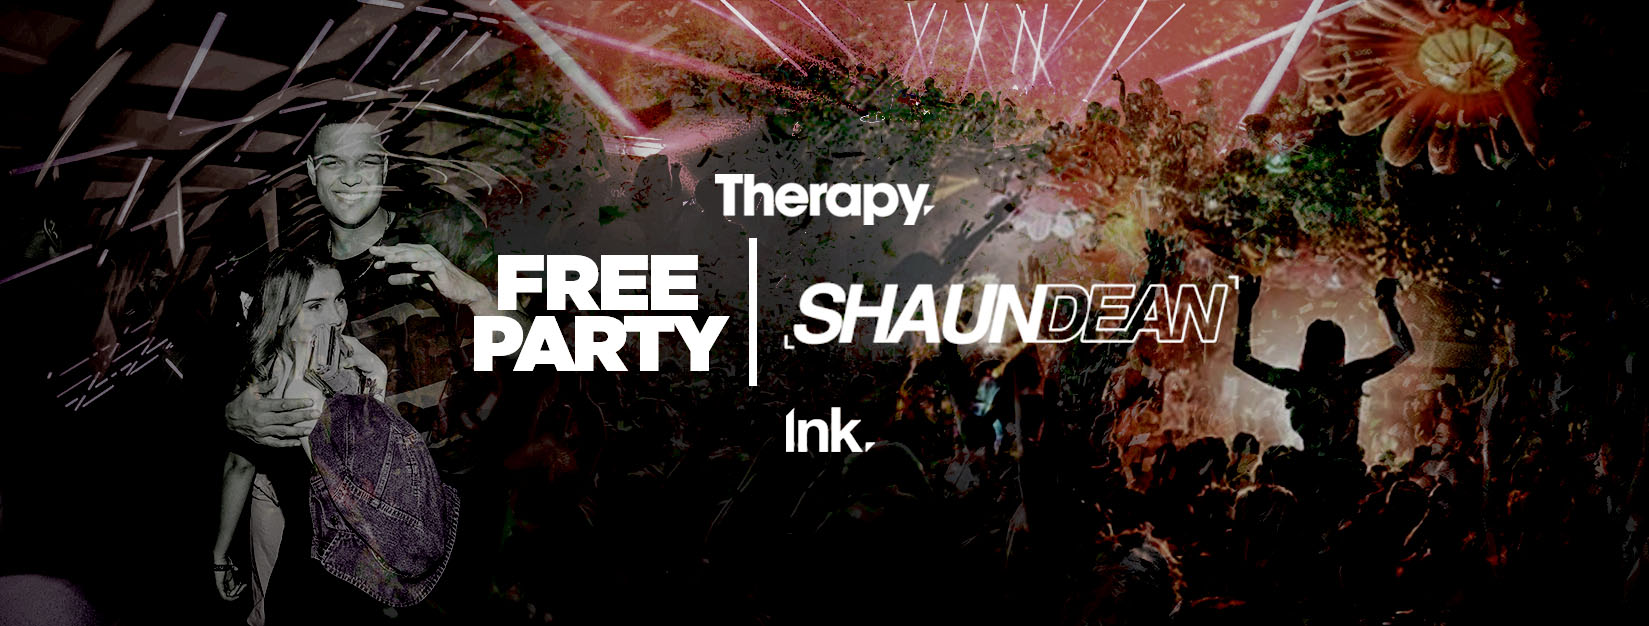 Therapy – FREE PARTY – Shaun Dean